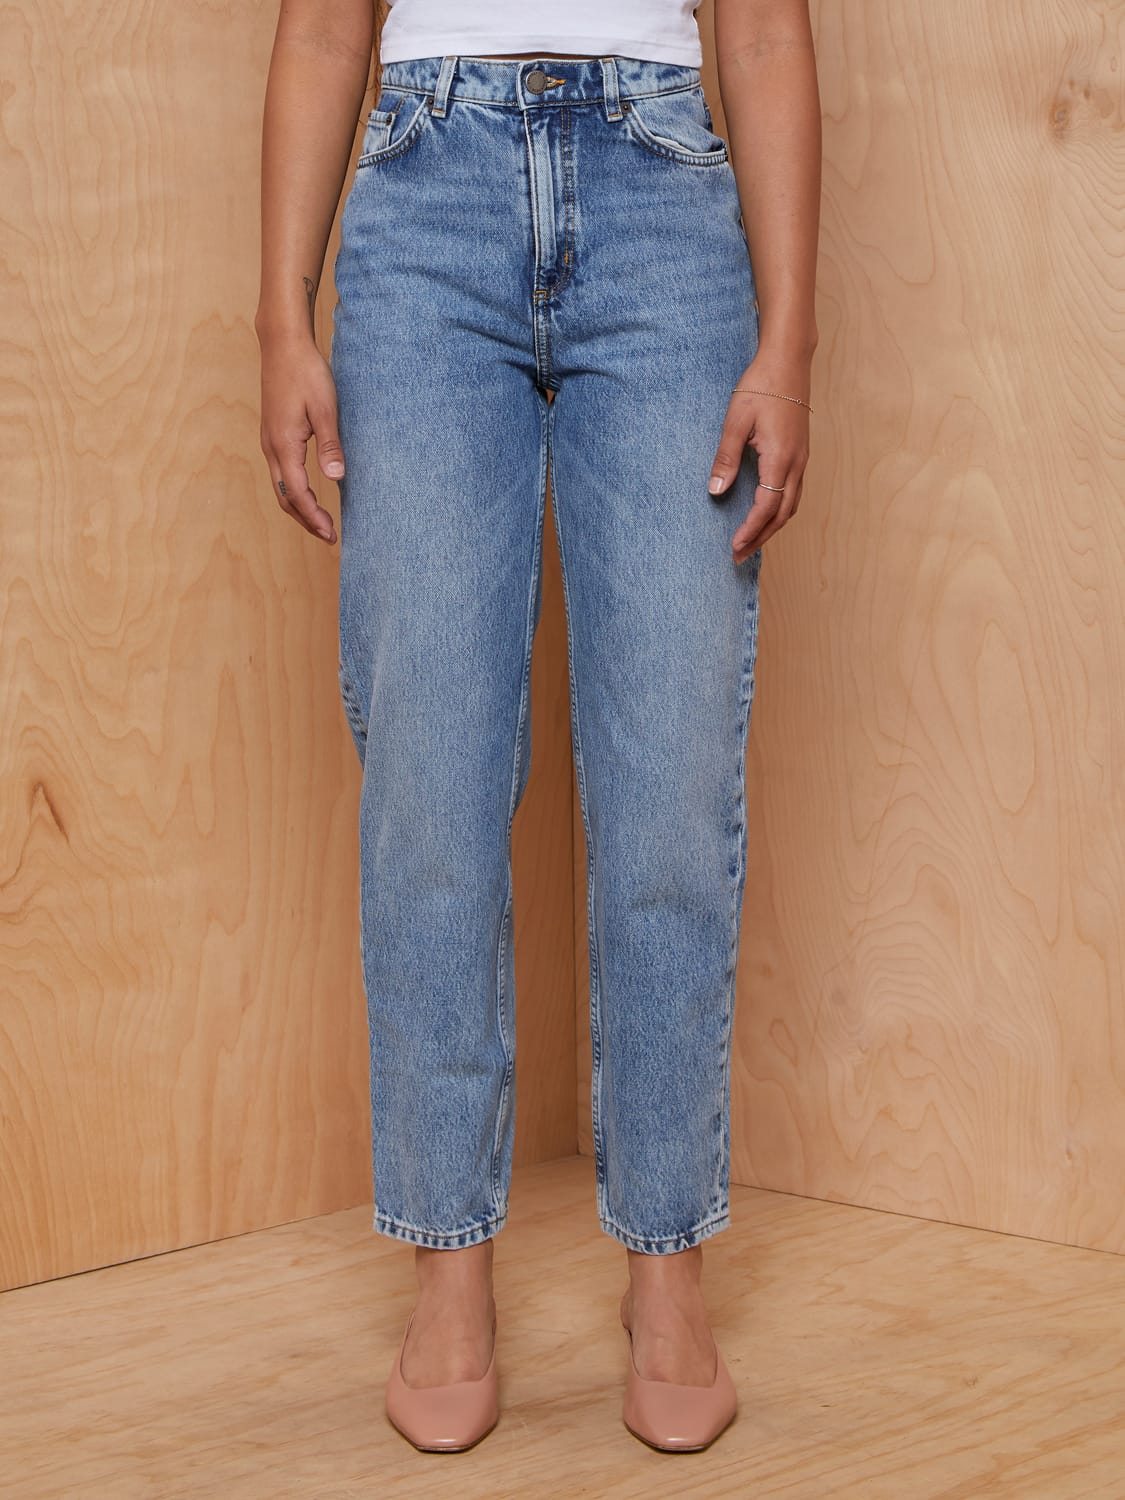 & Other Stories Lightwash Straight Leg Jeans